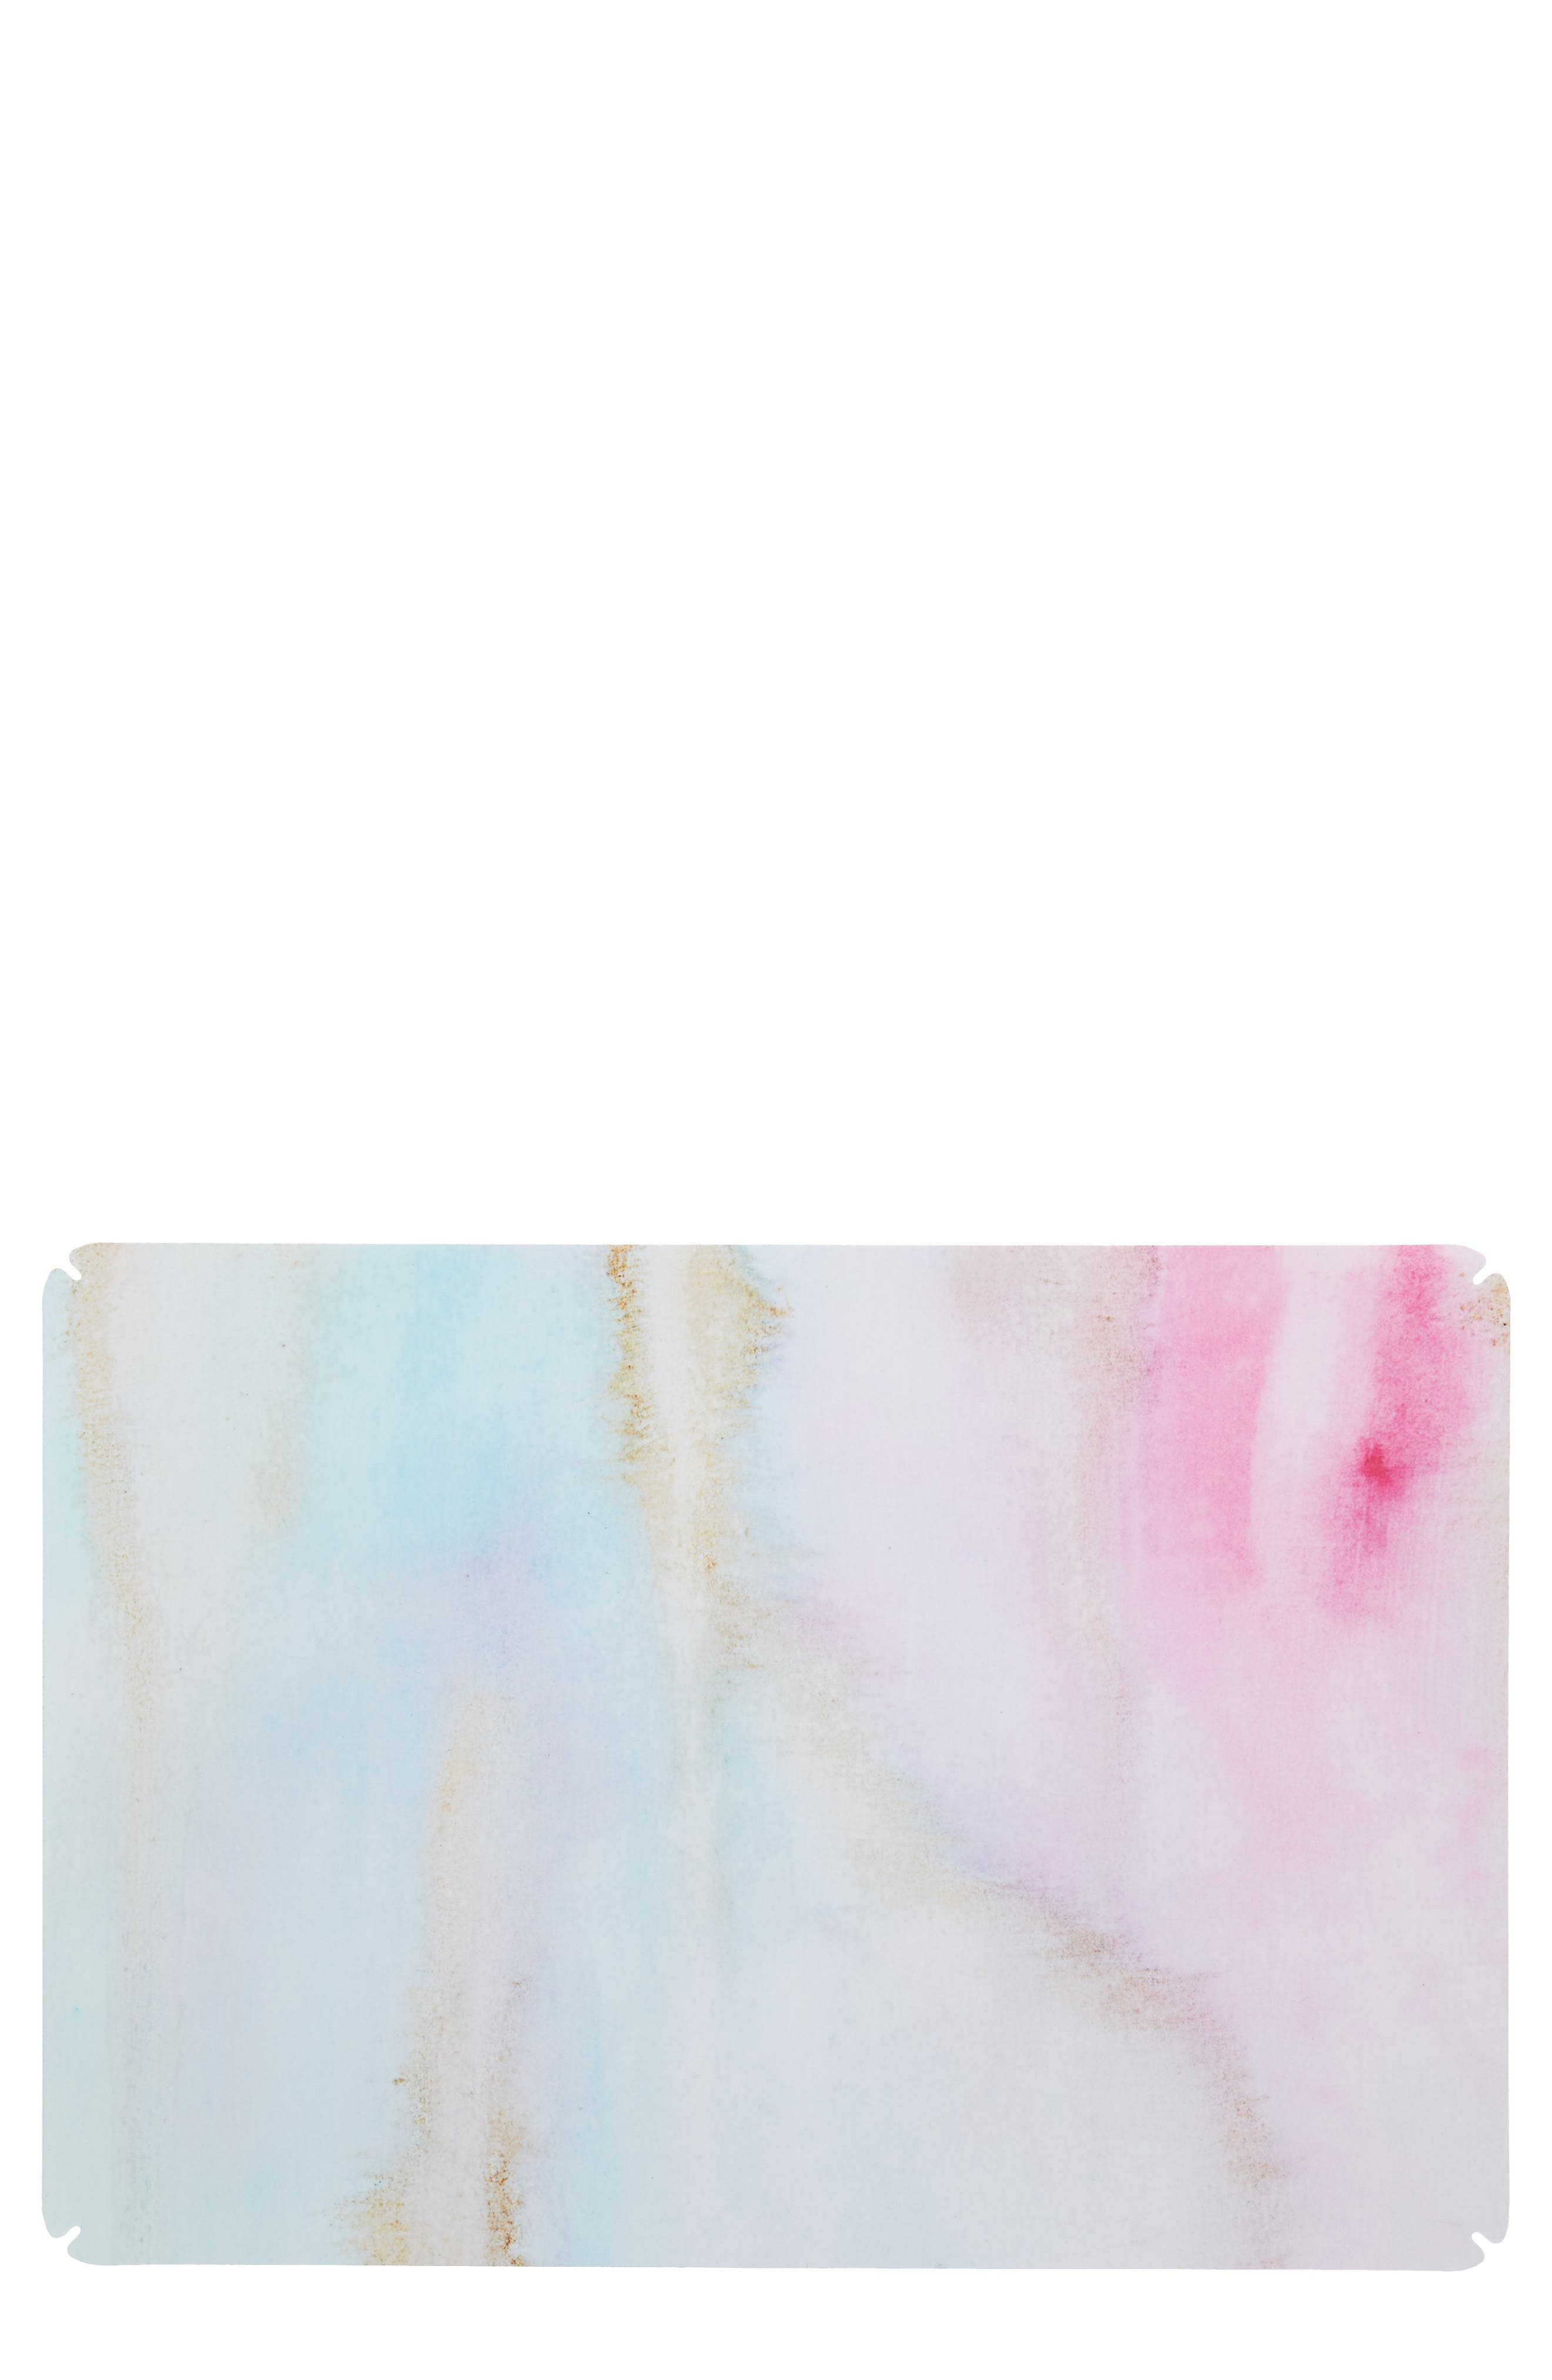 Recover Watercolor Marble 13-Inch Macbook Skin